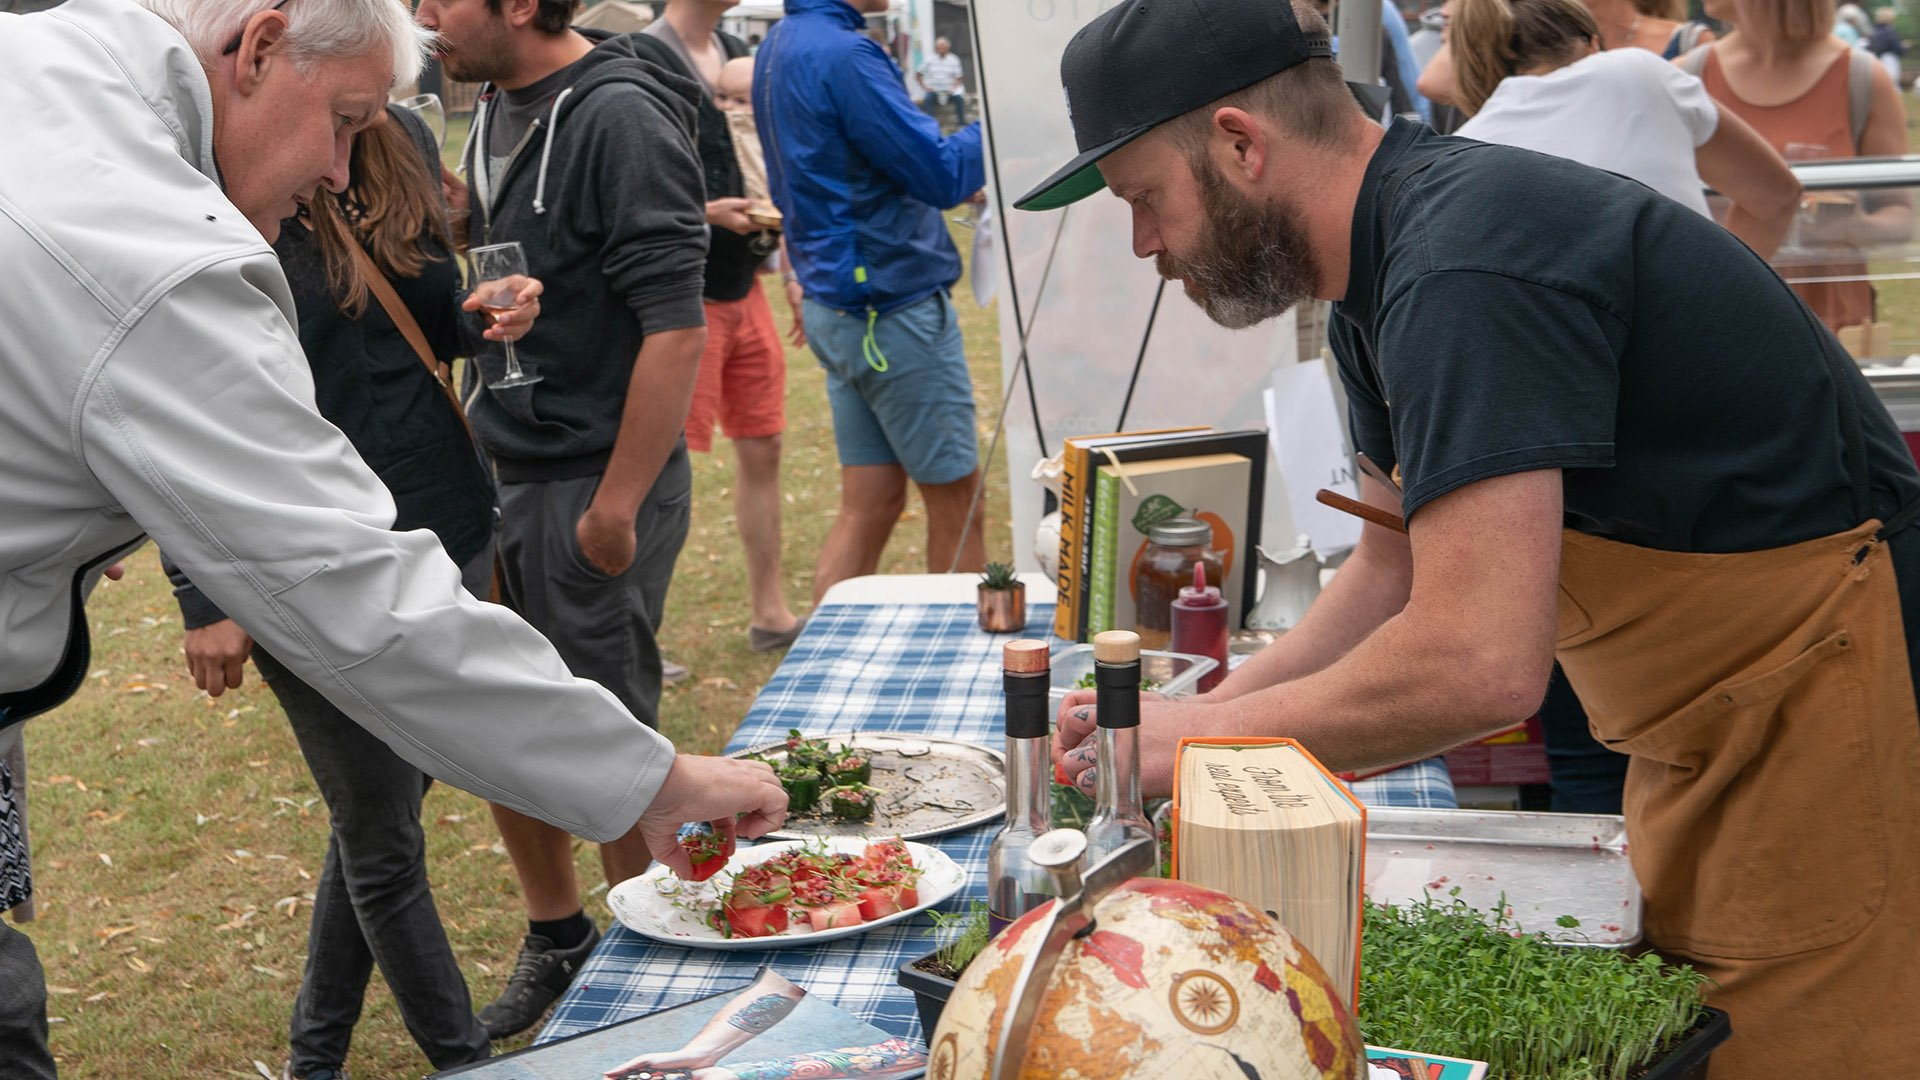 http://spatulamedia.ca/wp-content/uploads/2019/05/chef-james-at-feast-of-fields.jpg